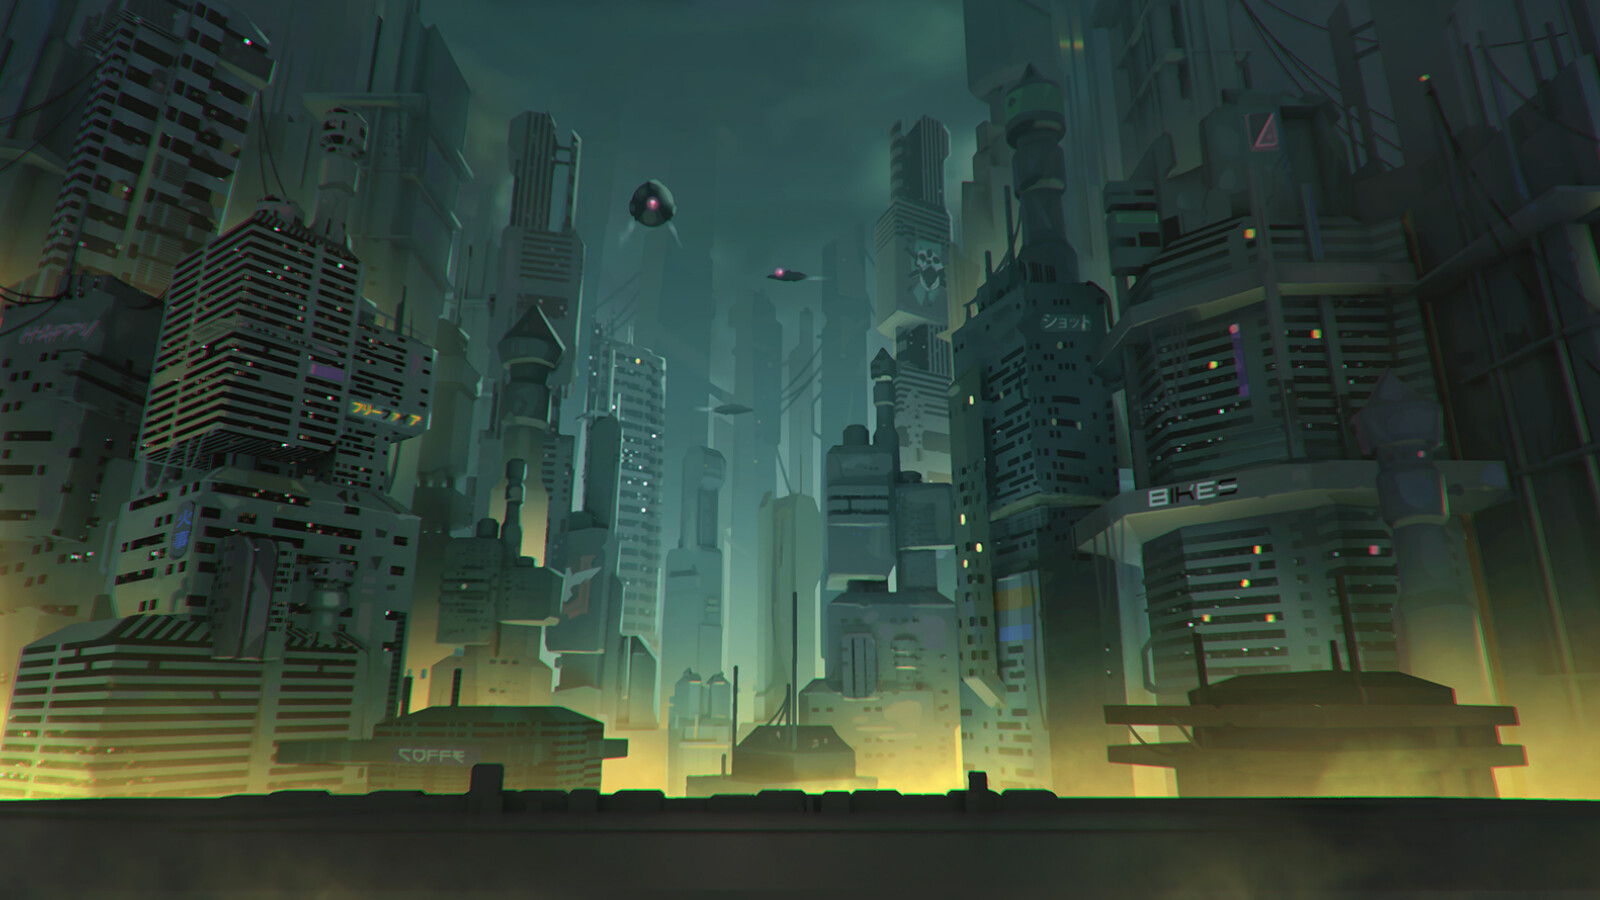 Exploration of the city, trying to be less alive,